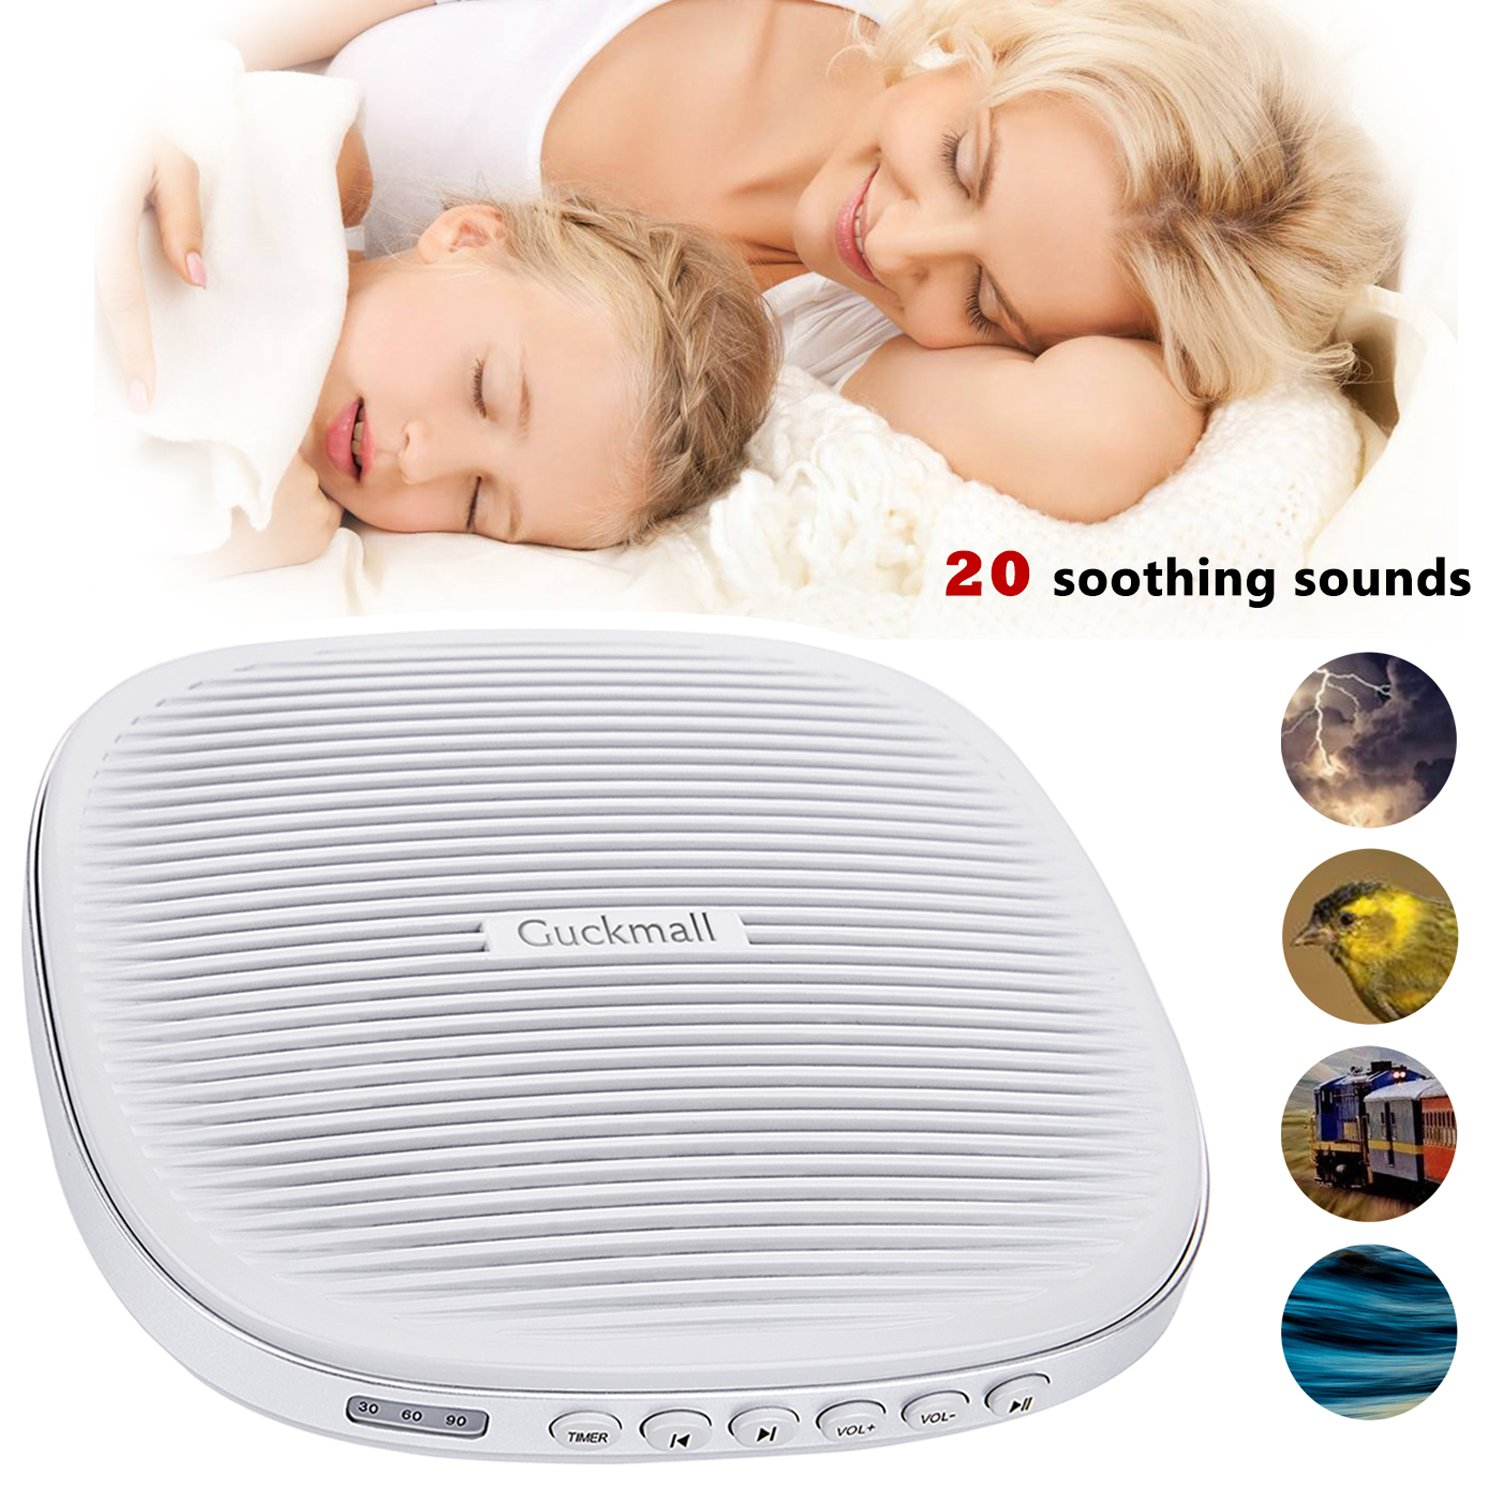 Guckmall Portable White Noise Machine, 20 Soothing Sounds with Memory Function Sleep Therapy Noise Machine Sound Machines, Sleeping Timer for Baby, Kids, Adults or Travel